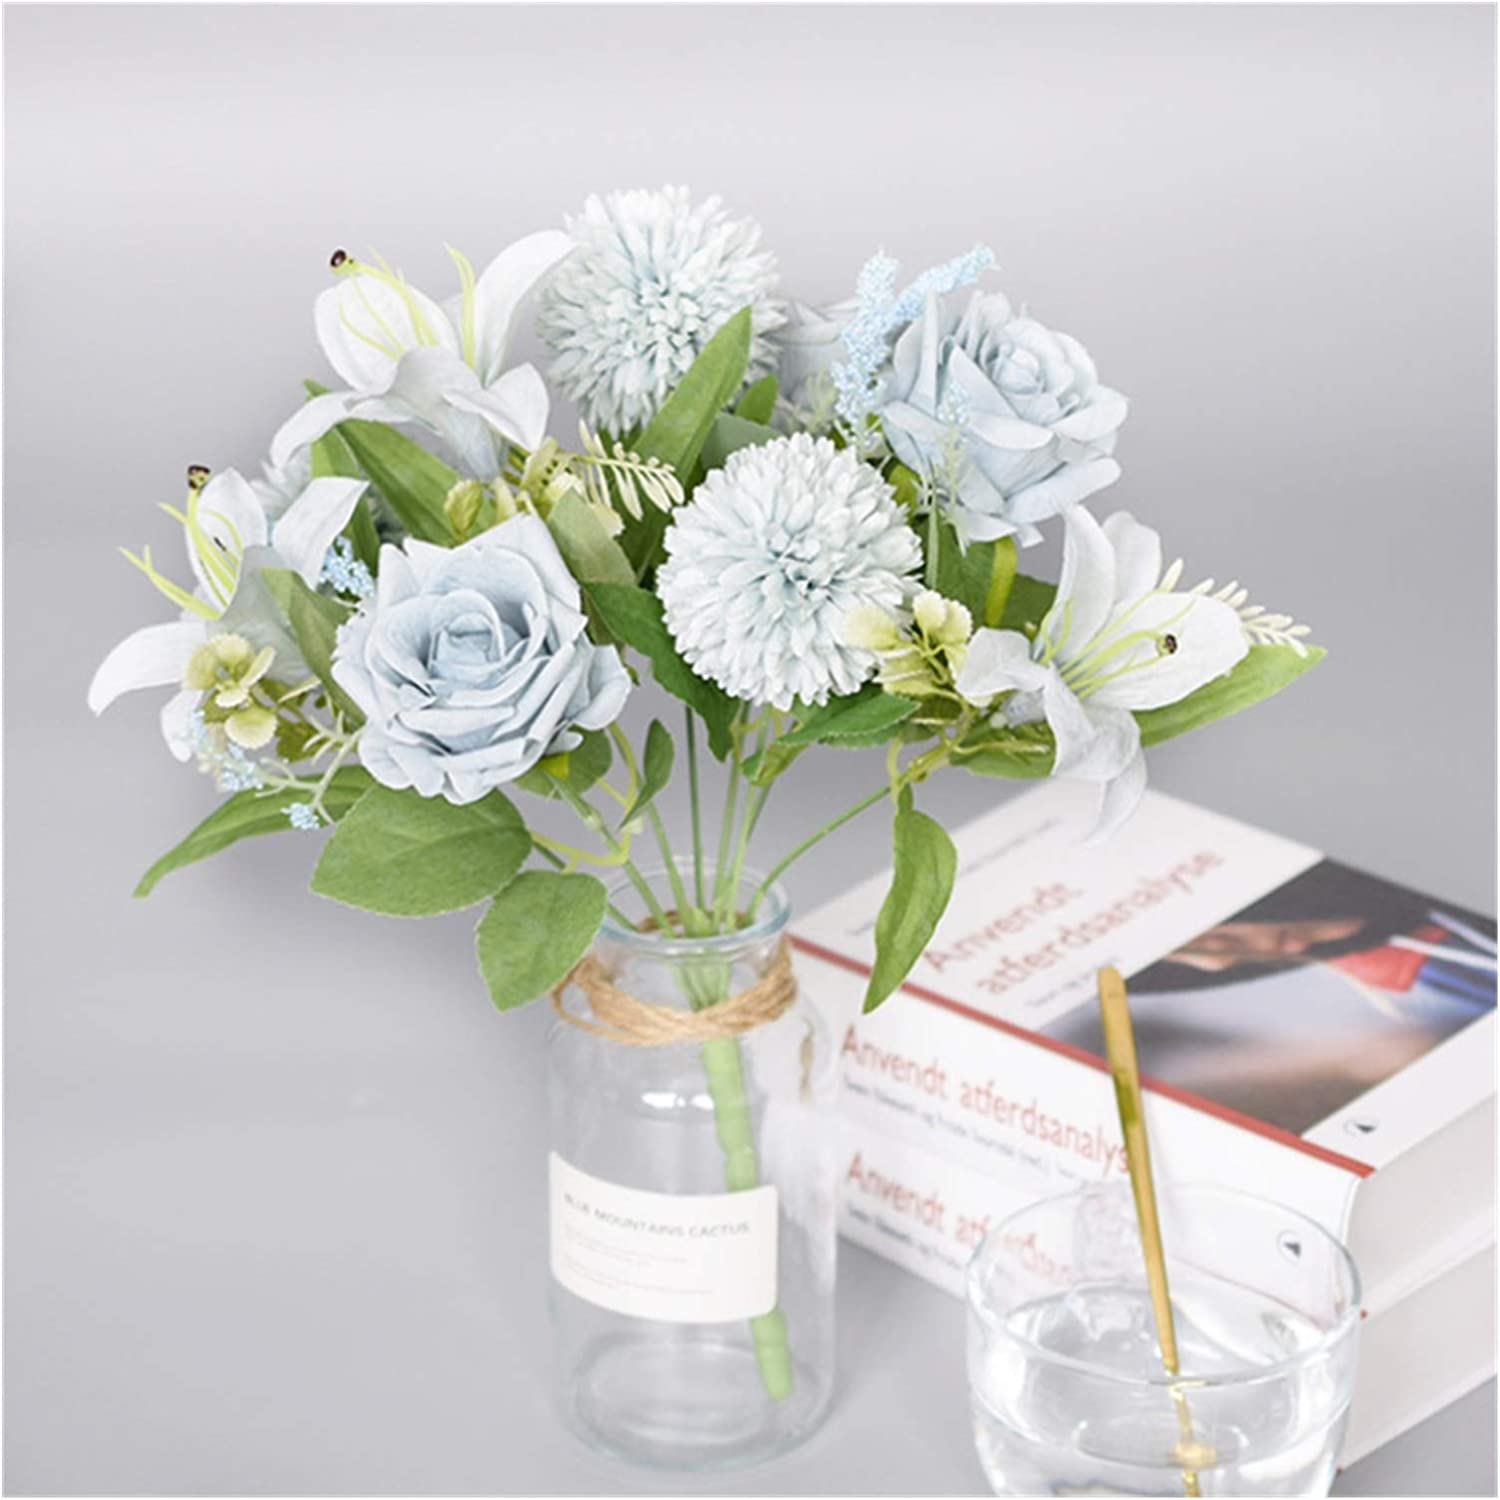 free XIAOXUANMY Artificial Flowers Same day shipping 1 Hydra Bouquet